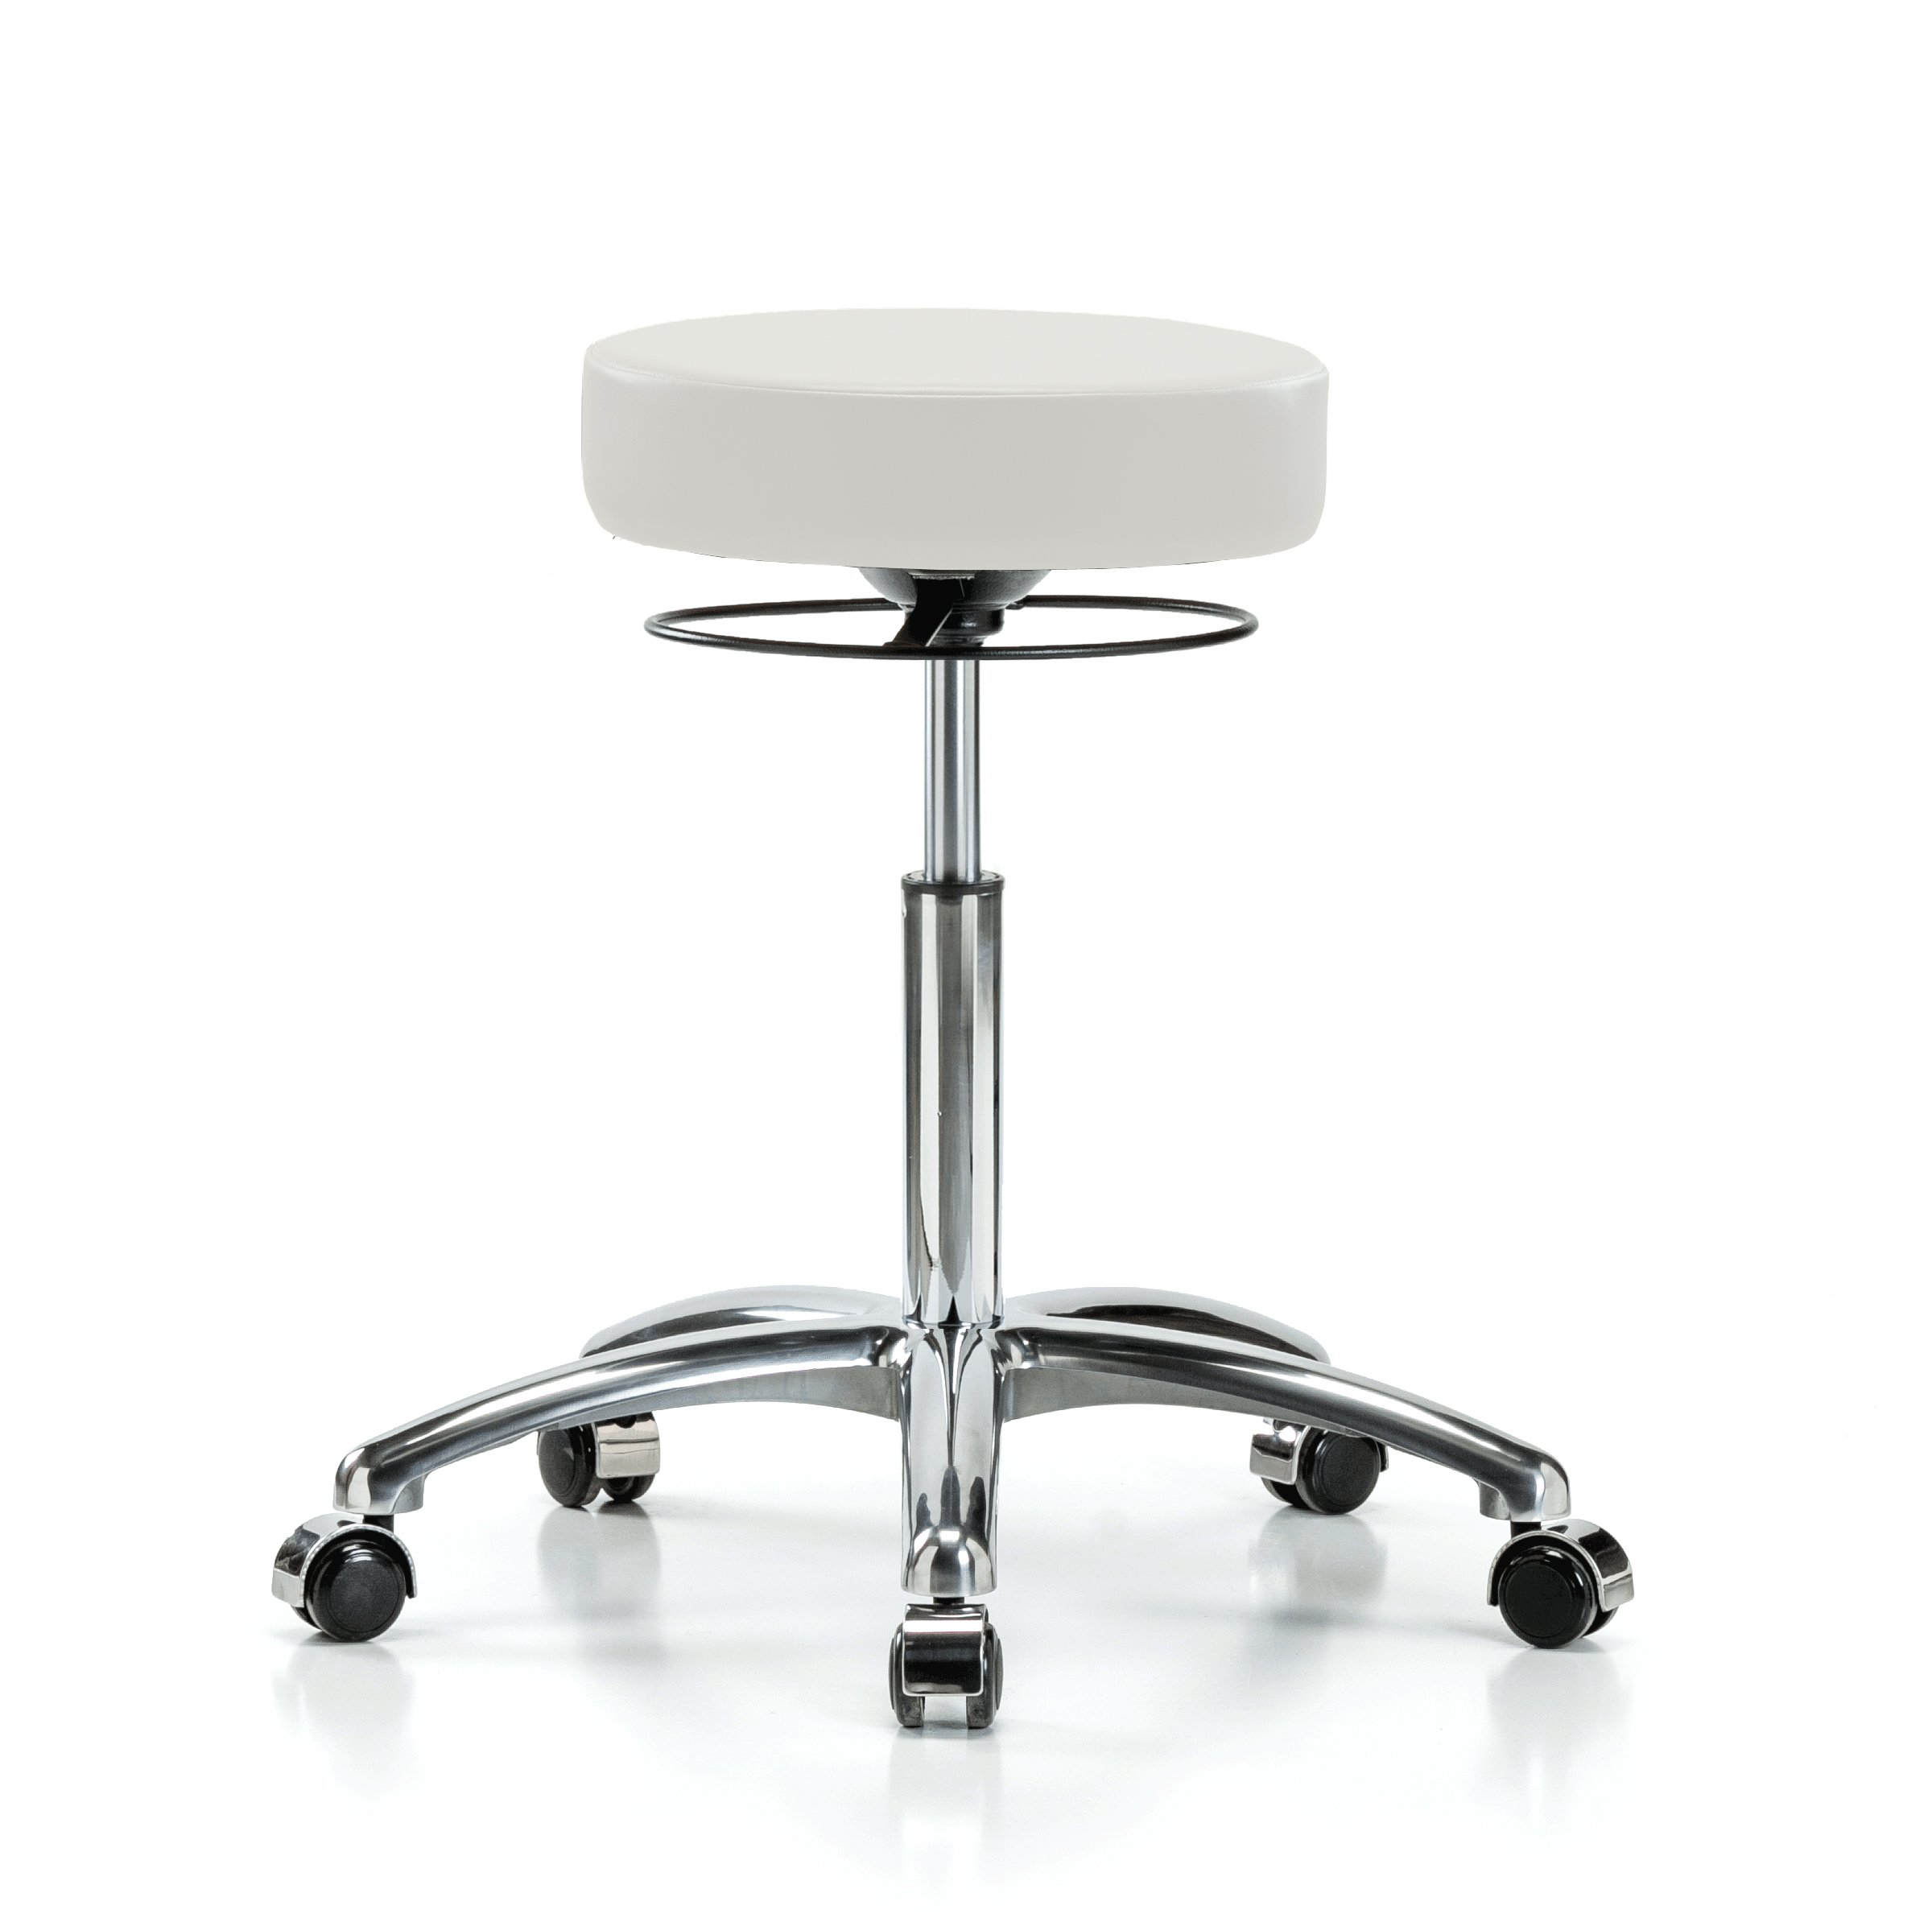 Perch Chrome Stella Rolling Adjustable Stool Medical Salon Spa Massage Tattoo Office 21'' - 28.5'' (Hard Floor Casters/Adobe White Vinyl)